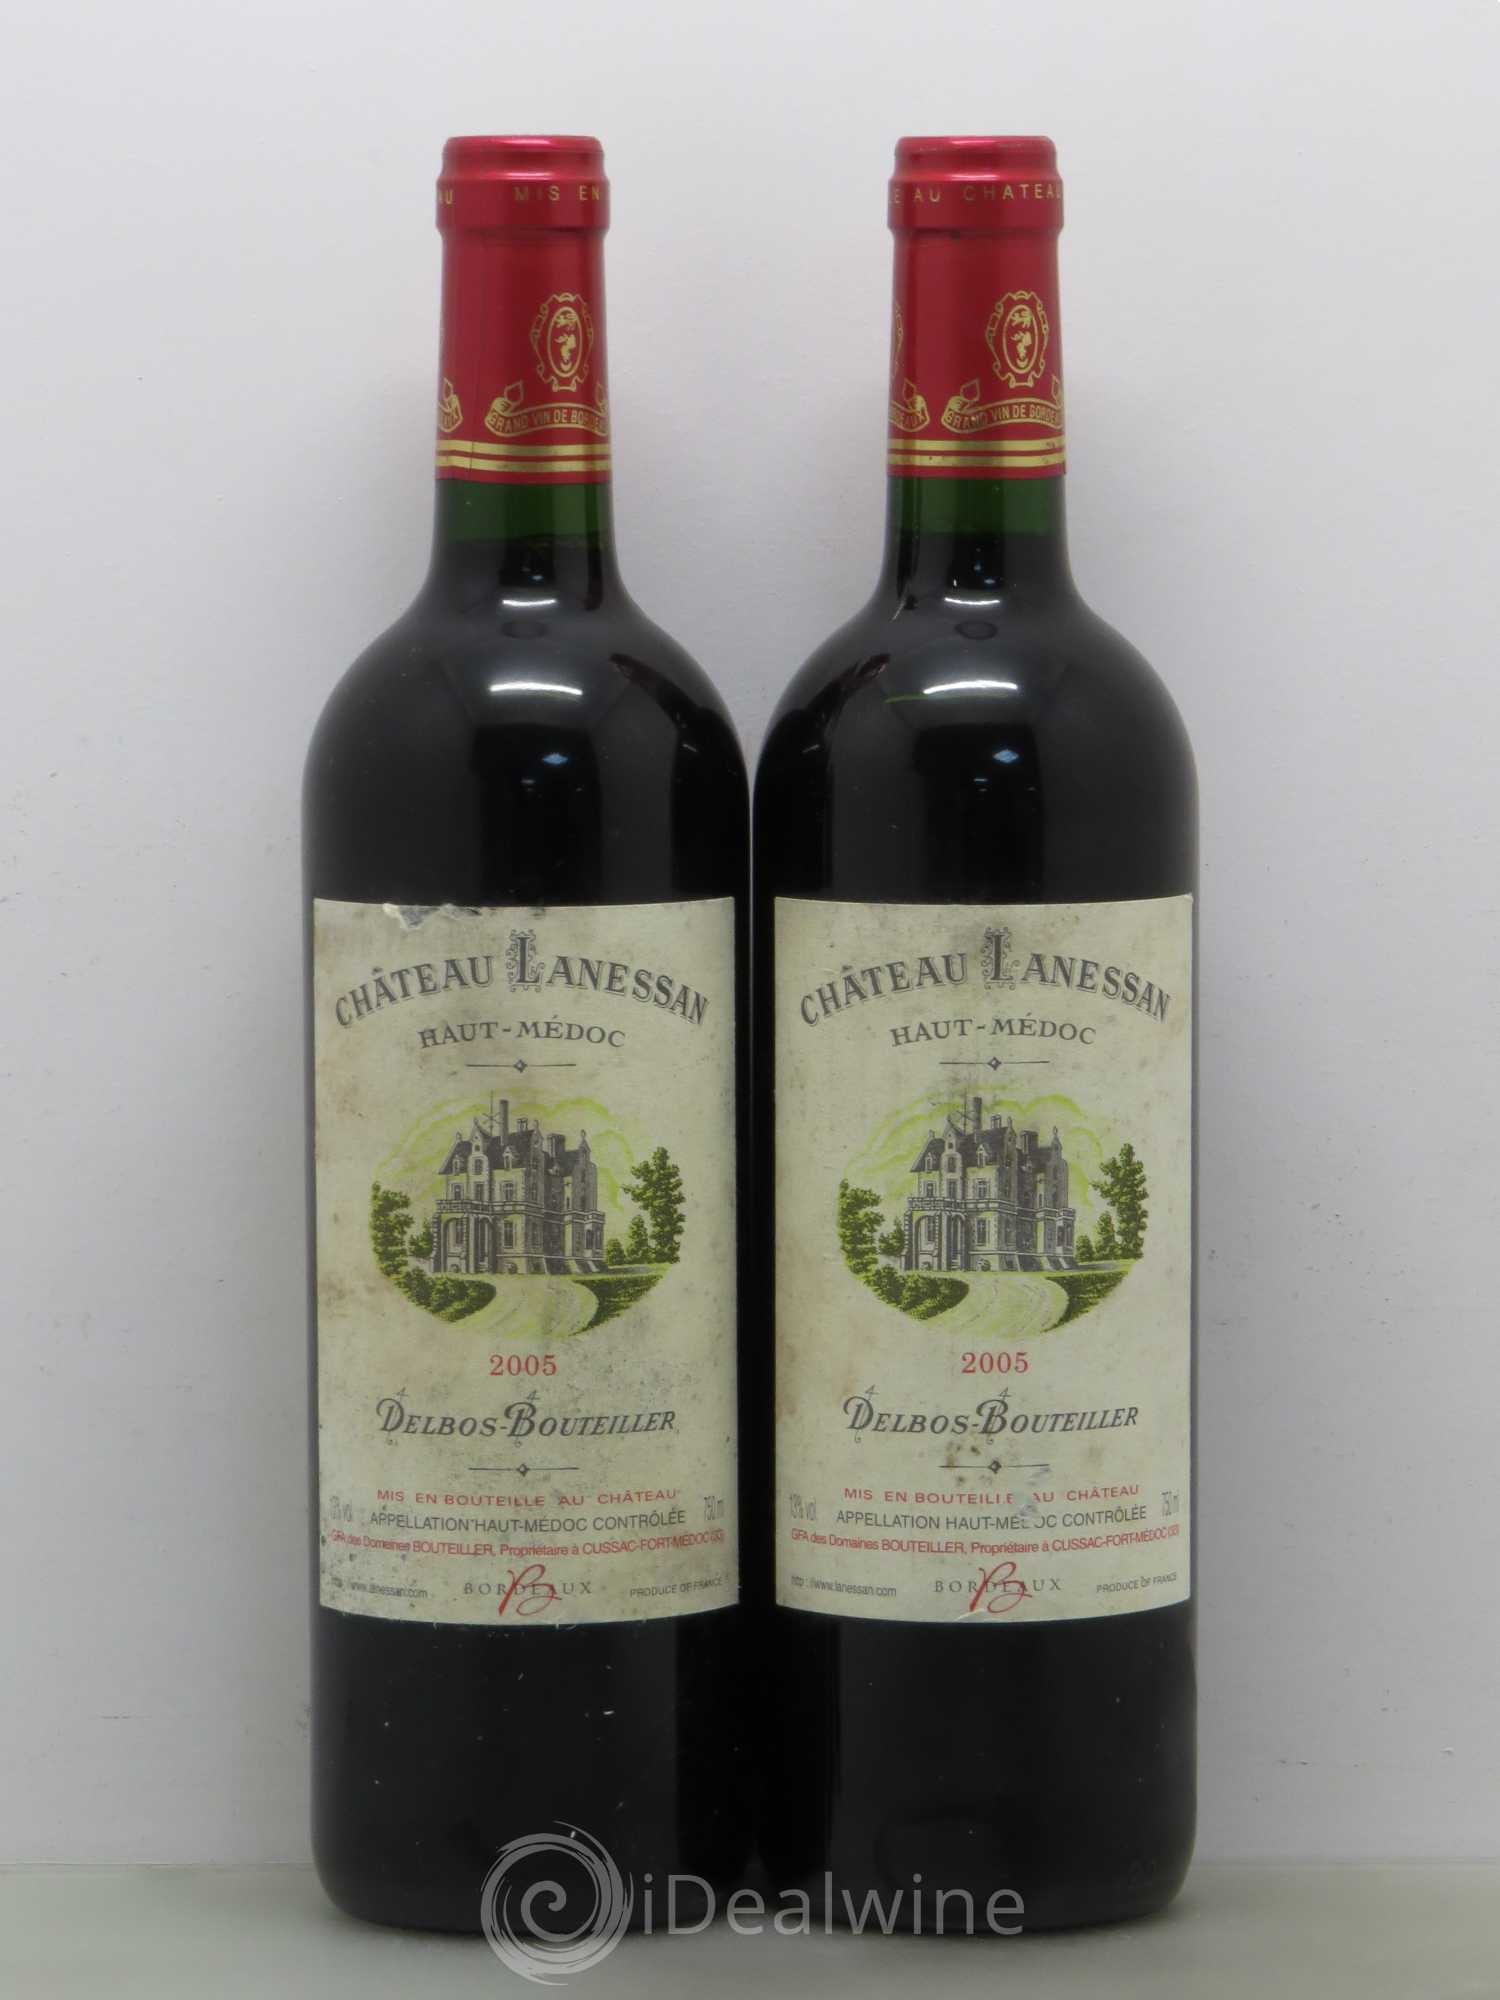 Acheter ch teau lanessan cru bourgeois 2005 lot 39 for Chateau lanessan